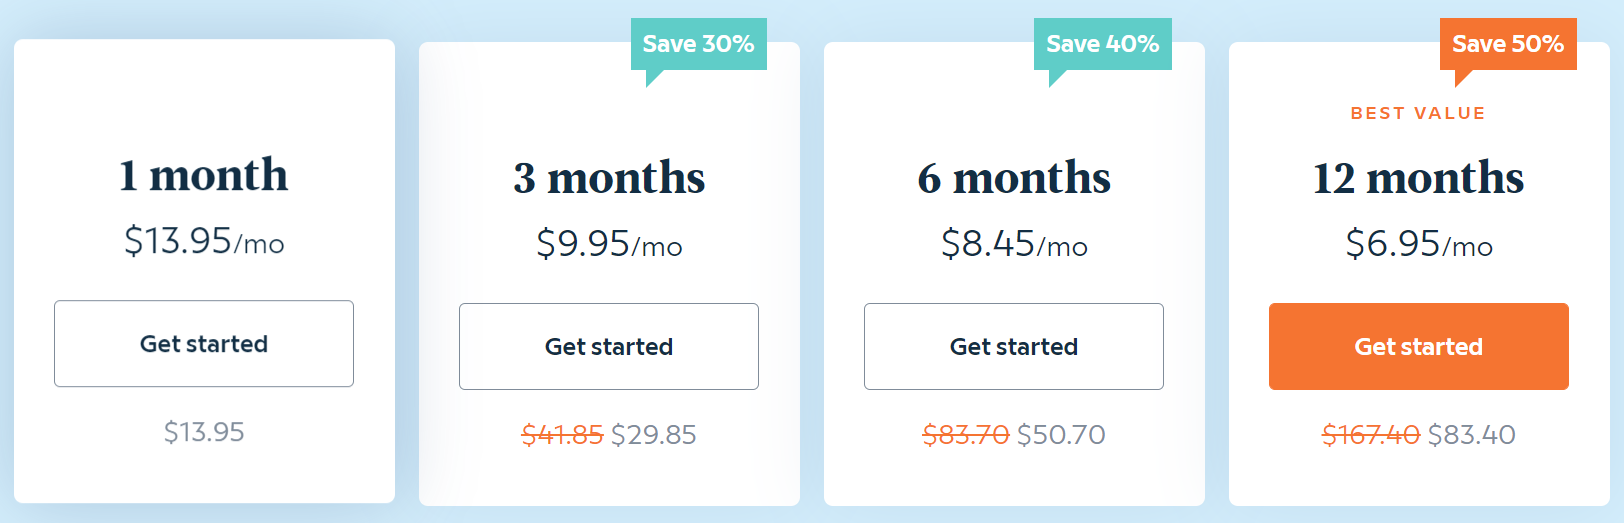 Screenshot showing the various Babbel subscription prices.